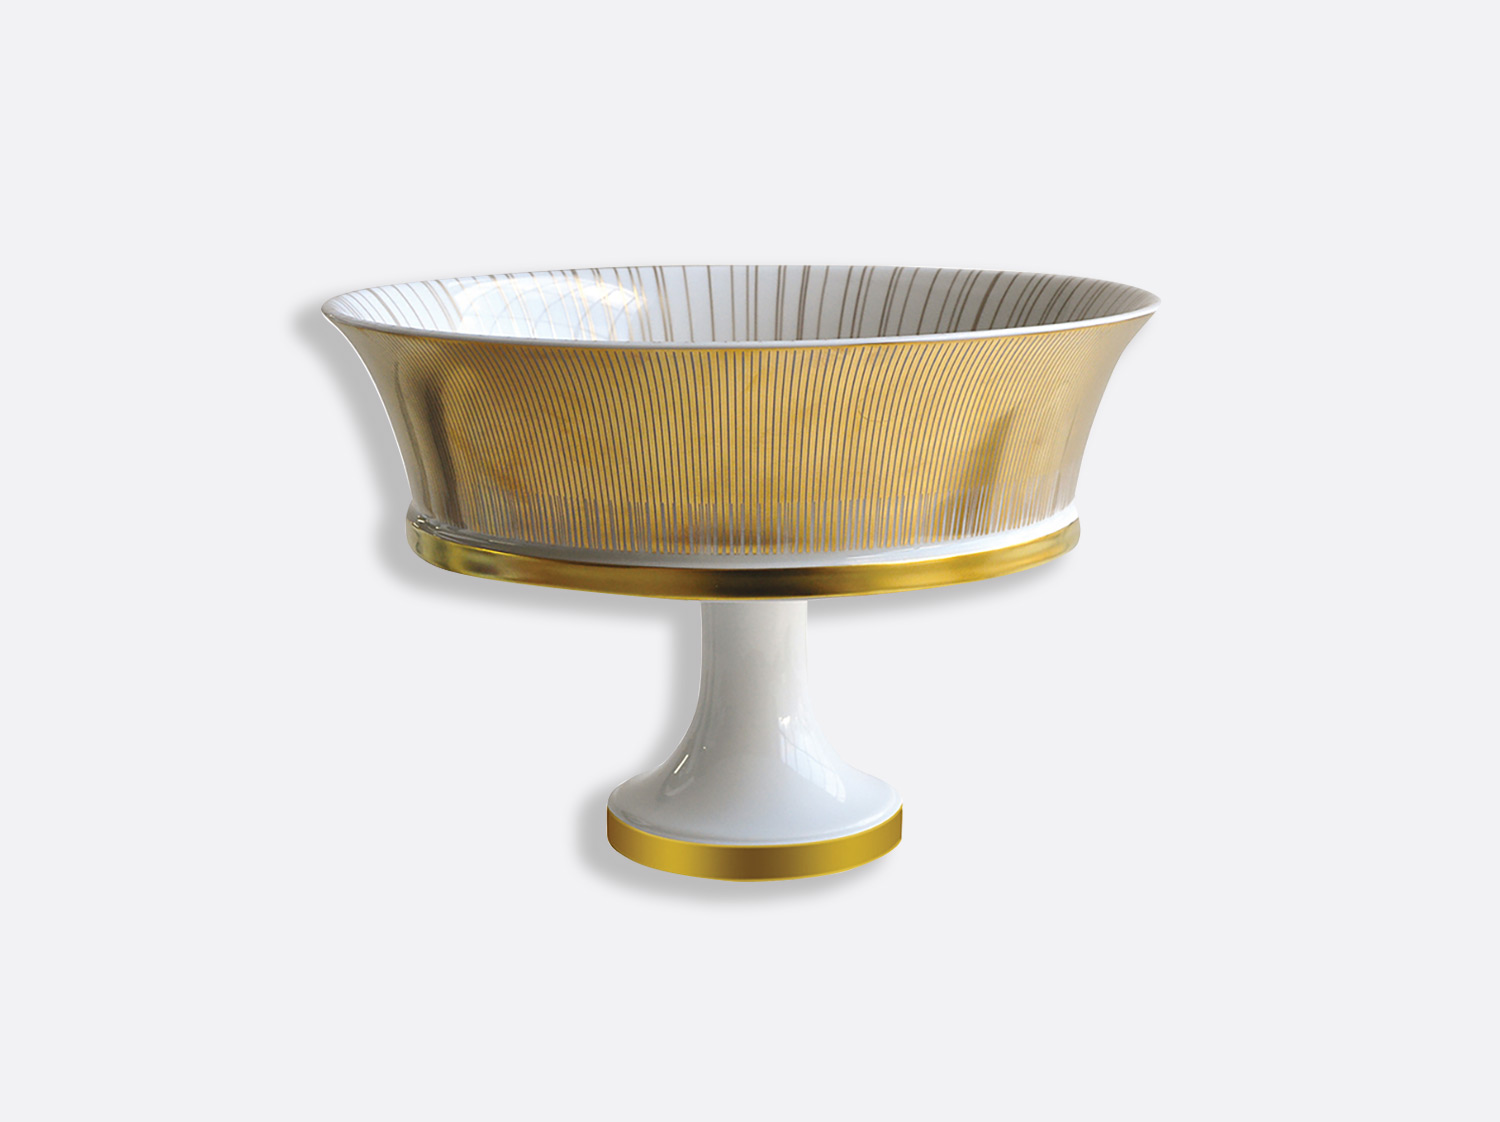 Coupe moyenne sur pied H. 27,5 cm en porcelaine de la collection Sol Bernardaud